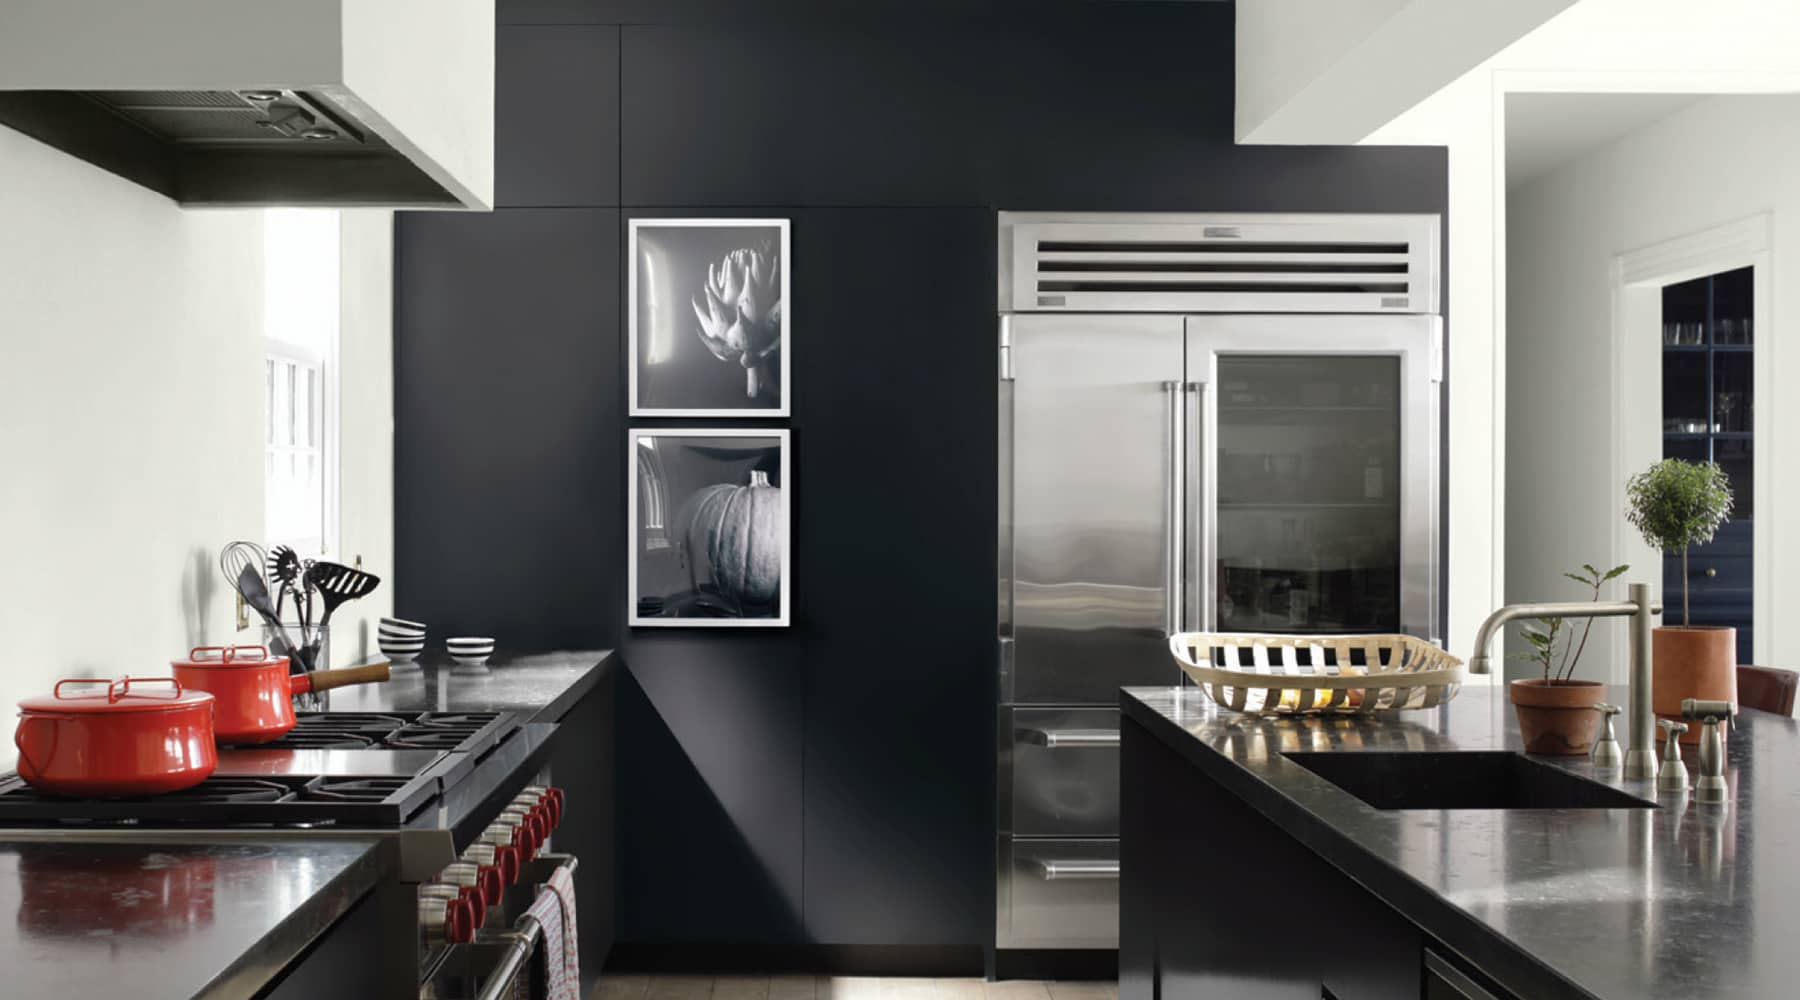 A kitchen painted with Benjamin Moore's 2126-10 Black Tar paint color, available at Clement's Paint in Austin, TX.